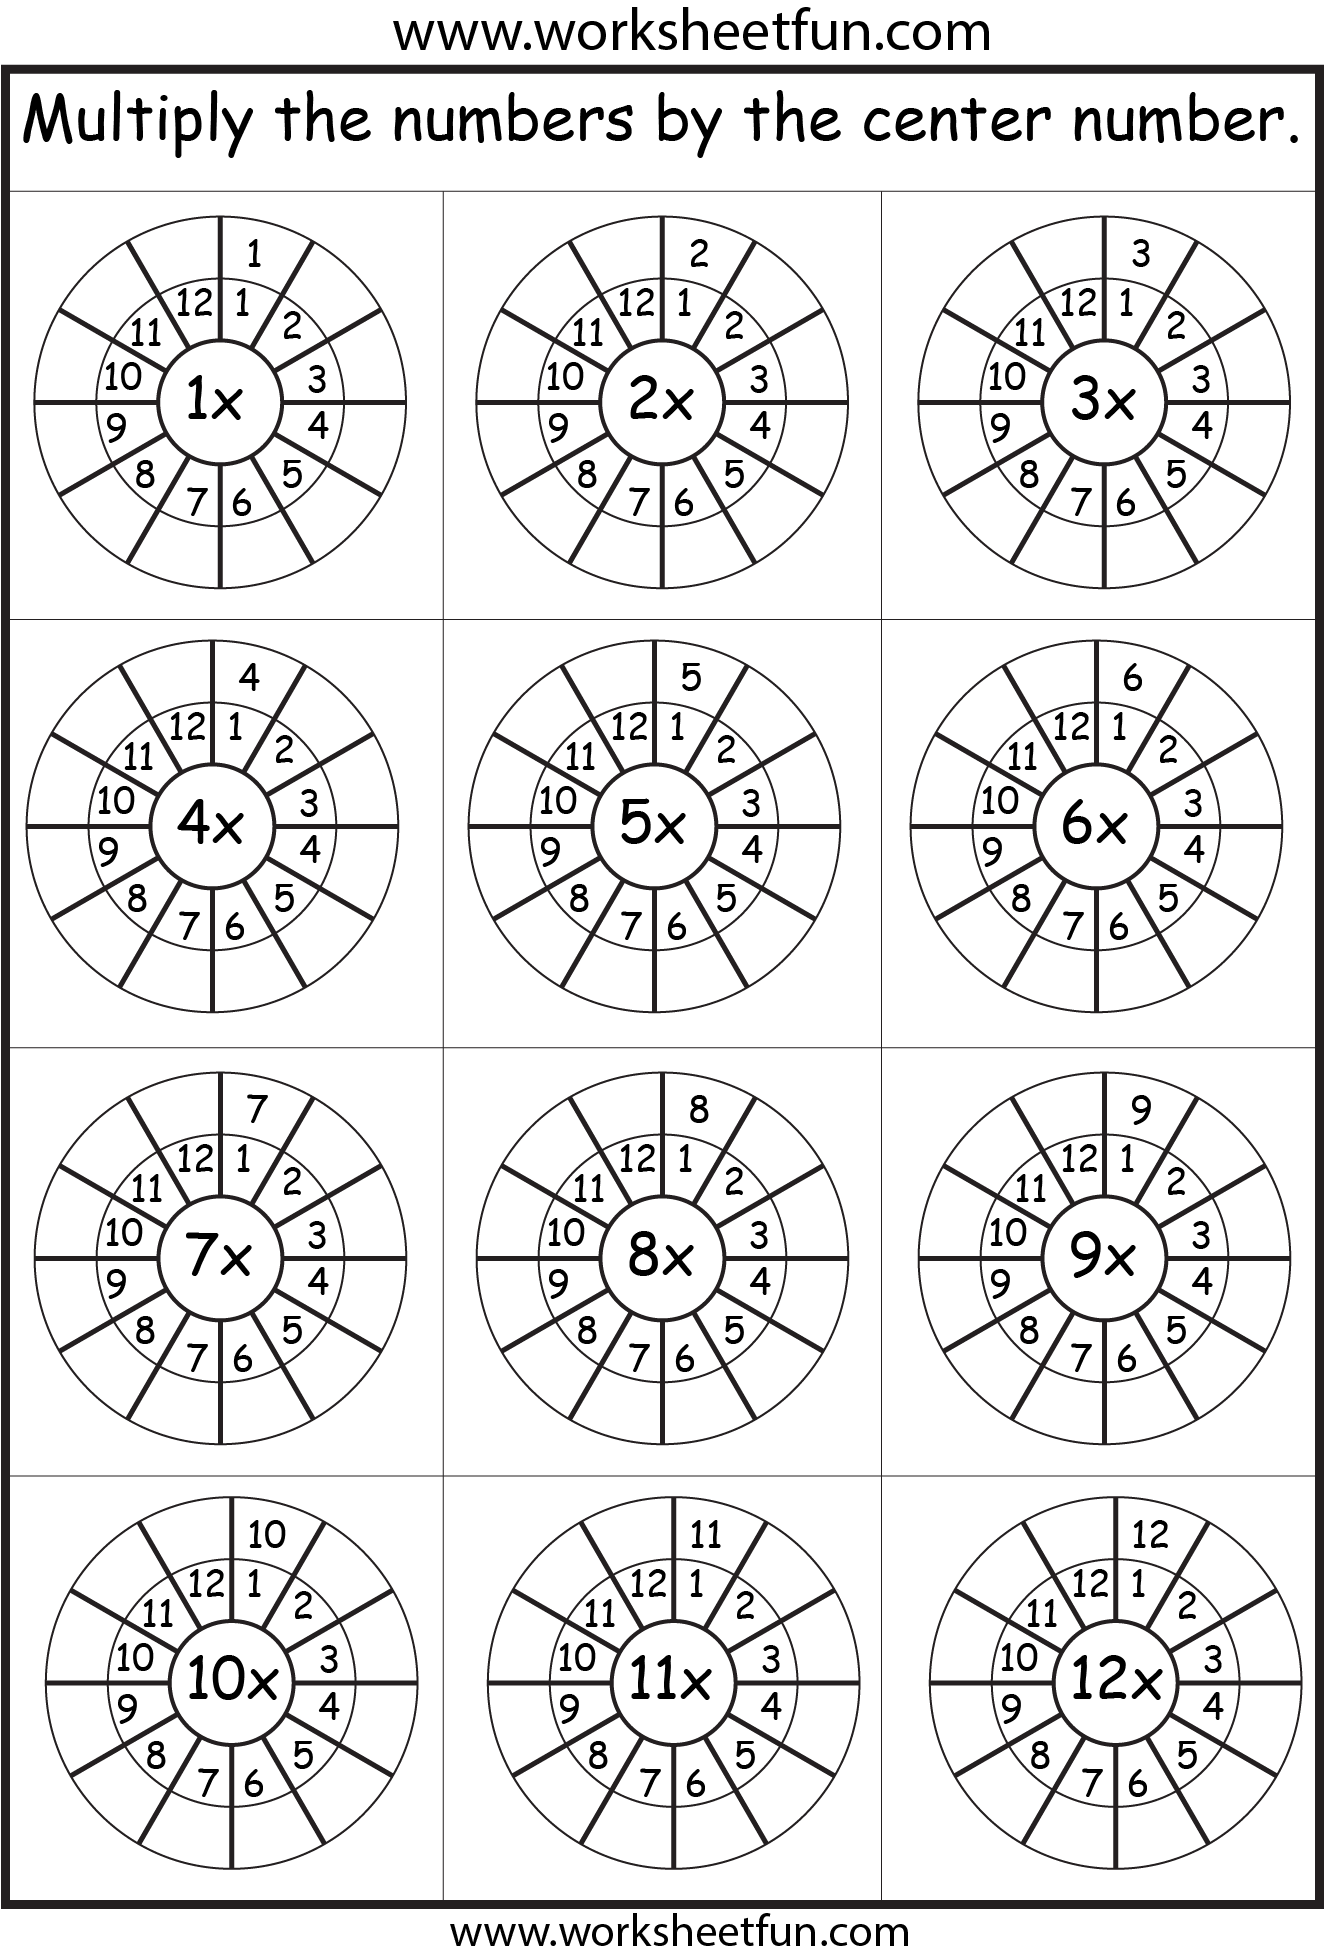 Times Table 212 Worksheets 1 2 3 4 5 6 7 8 9 10 11 – Multiplication by 12 Worksheets